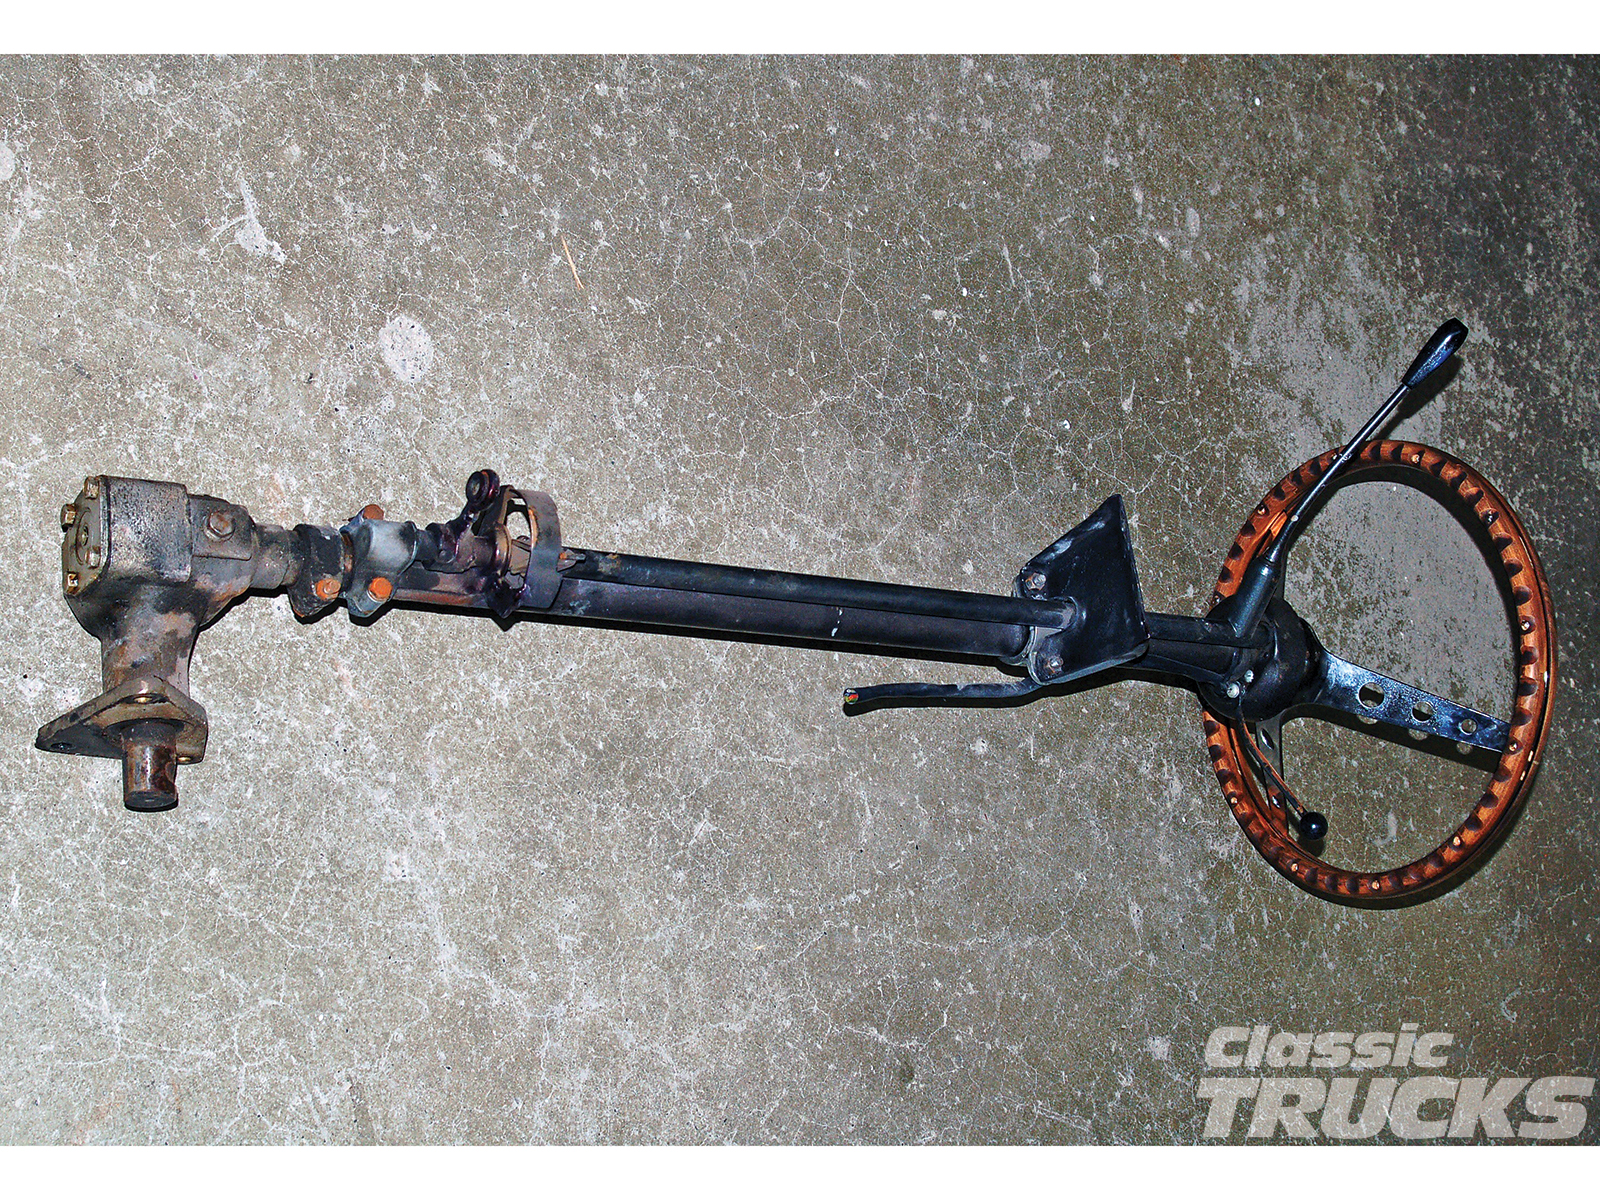 power steering for 1953 56 f 100s hot rod networkthis column has seen better days and the steering box is junk it